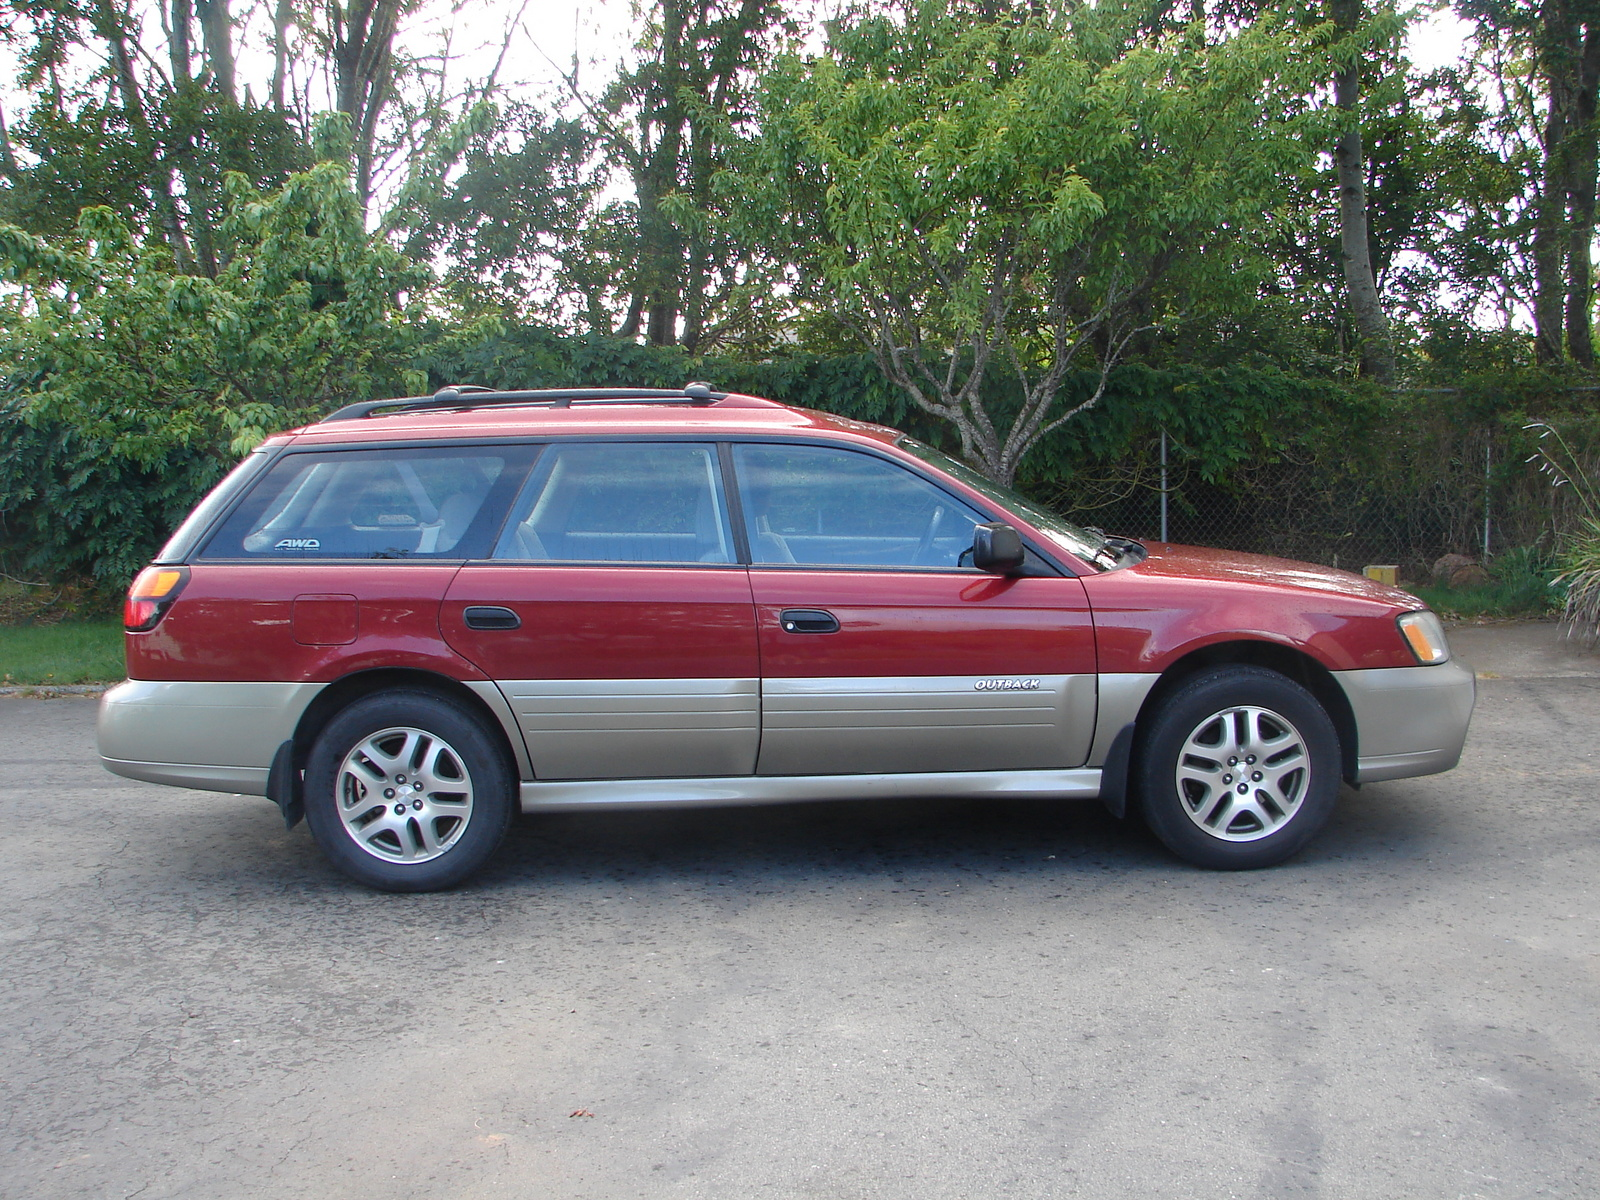 Subaru Outback Base Price | Autos Post